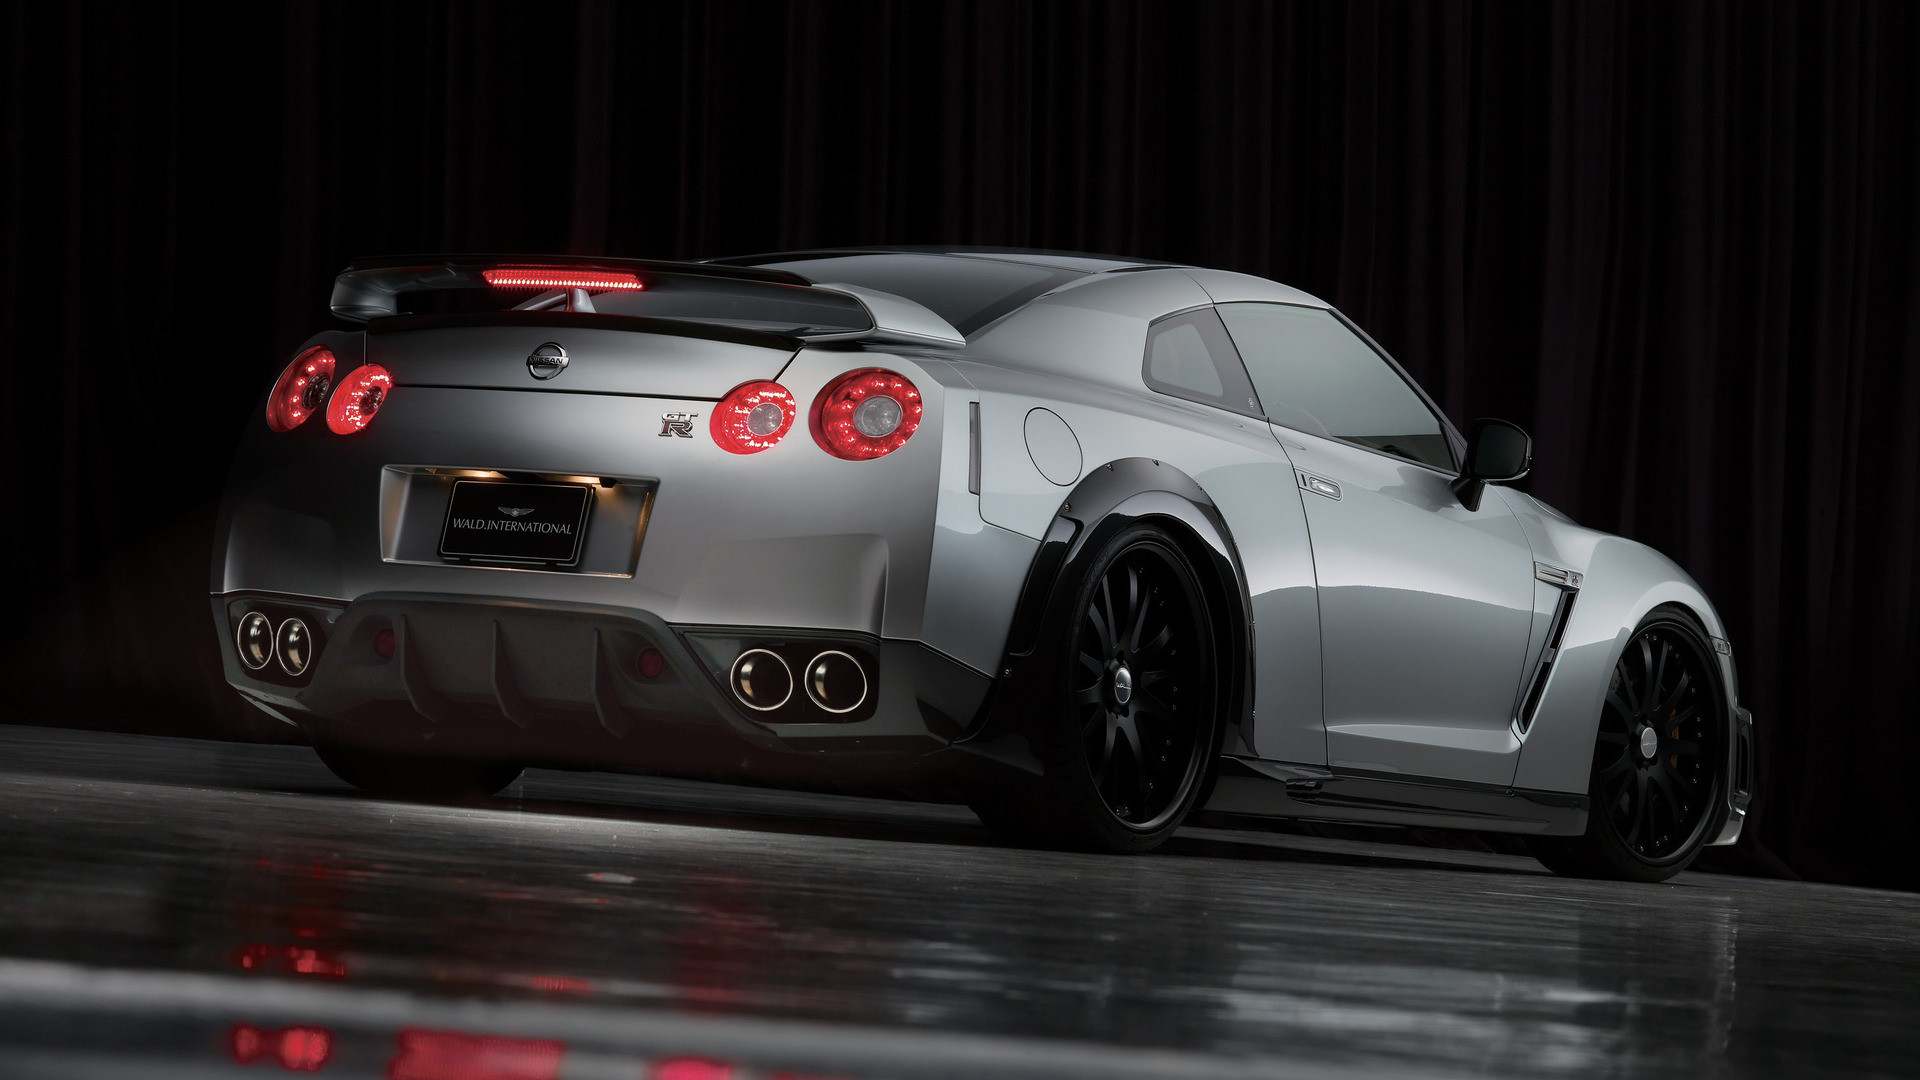 1920x1080 Awesome Nissan Car 1920X1080 Pixels Full HD Wallpaper Pack - Tech Bug .